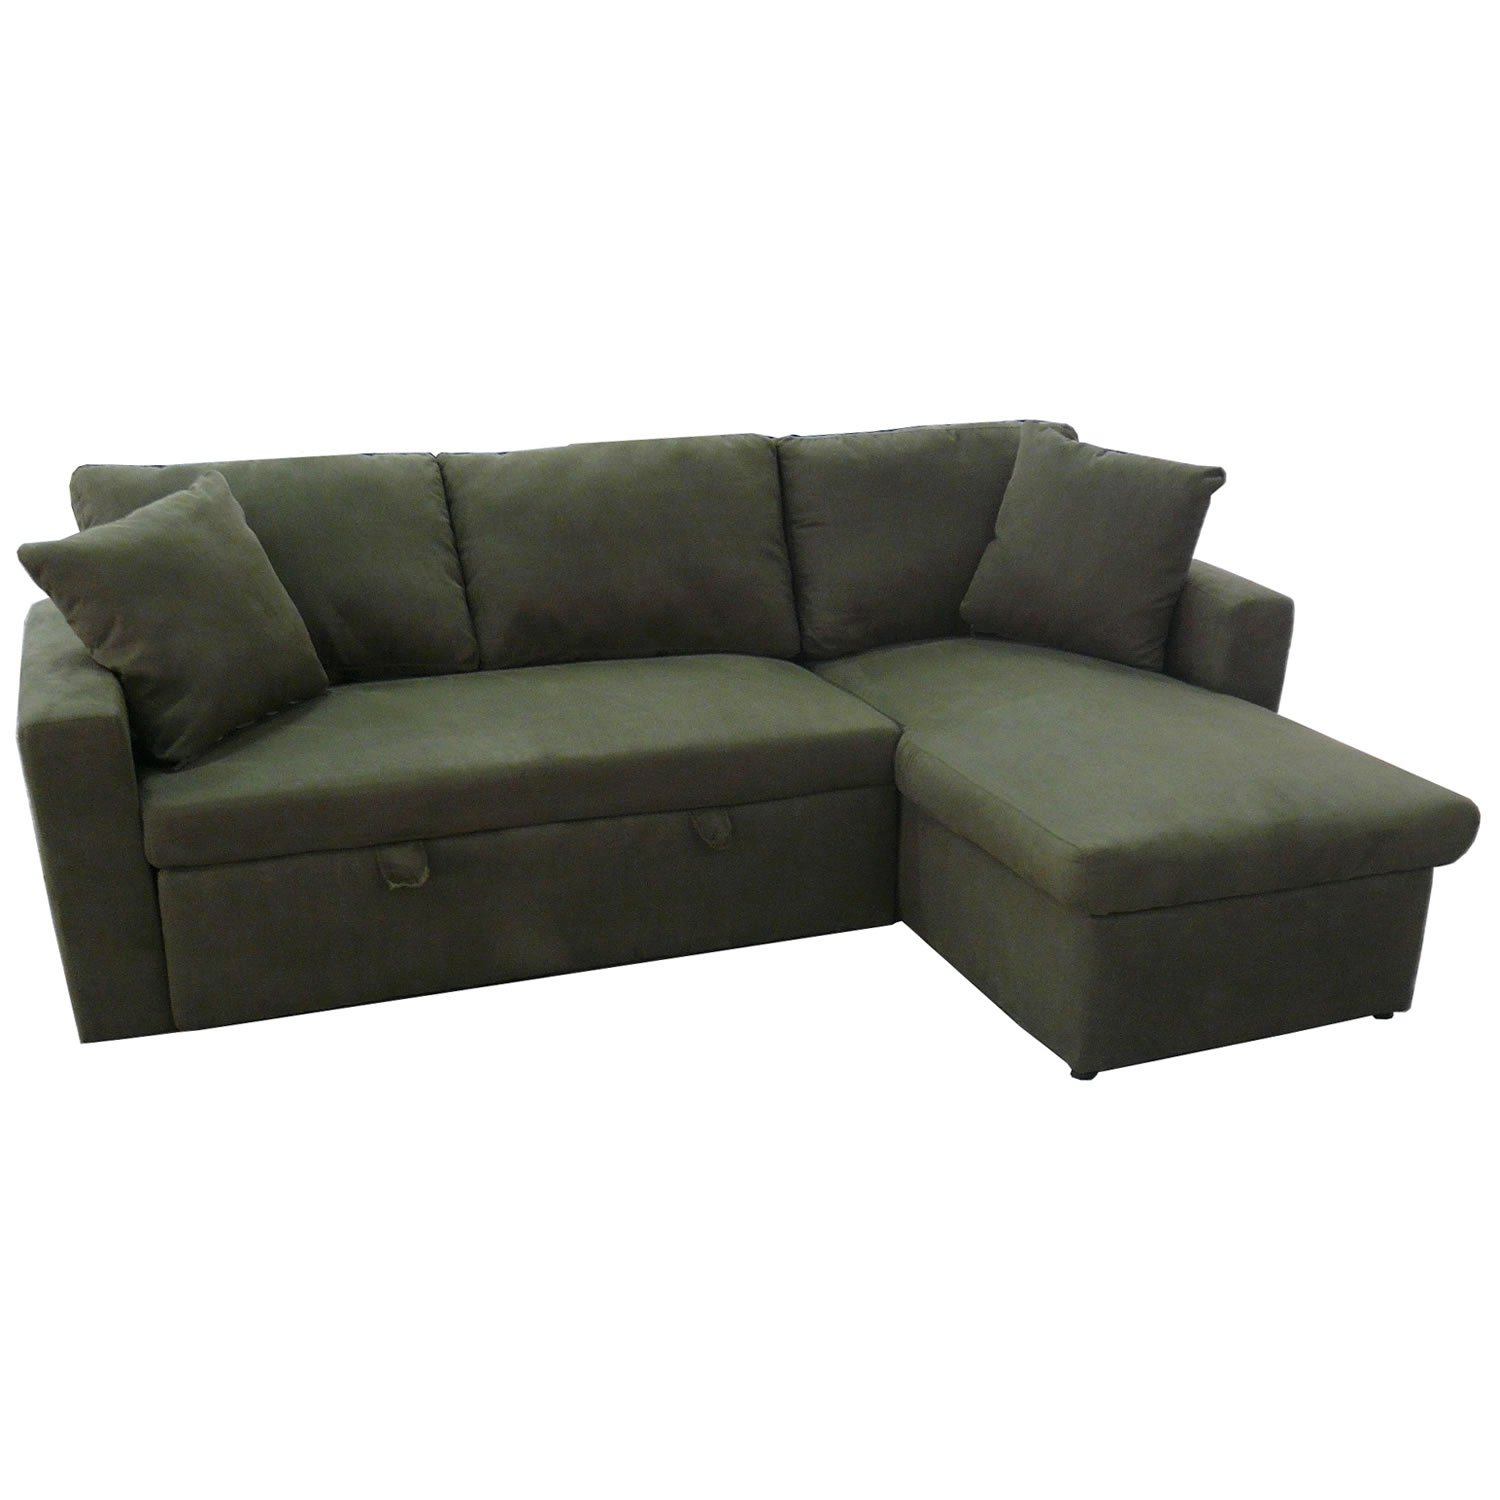 Sofa Loveseat Bed With Storage Beds Topglory For Corner Sofa Bed With Storage Ikea (Image 15 of 15)